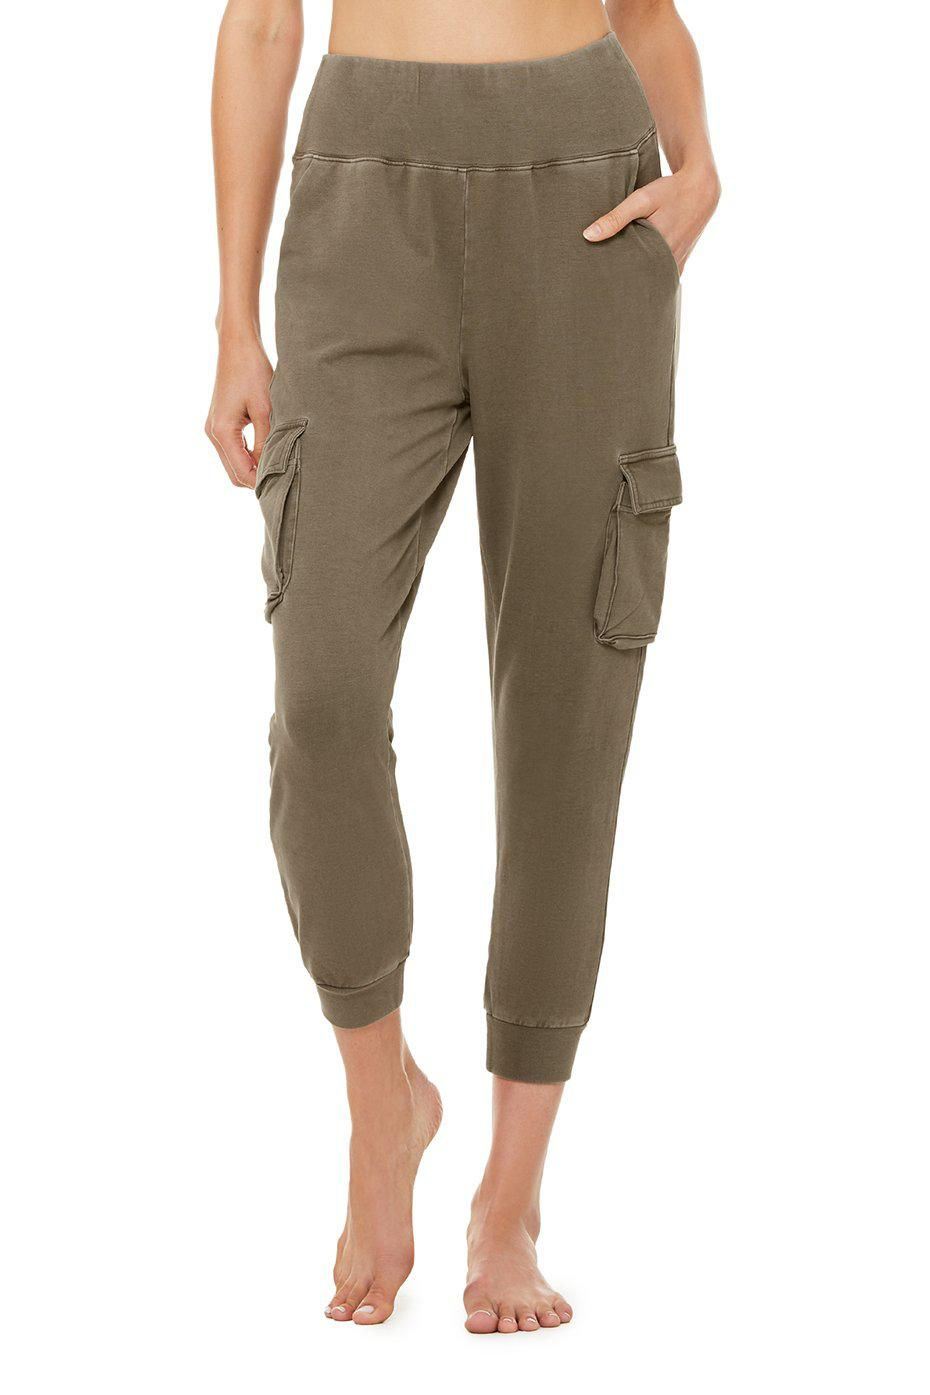 Washed 7/8 High-Waist Cargo Sweatpant - Olive Branch Wash